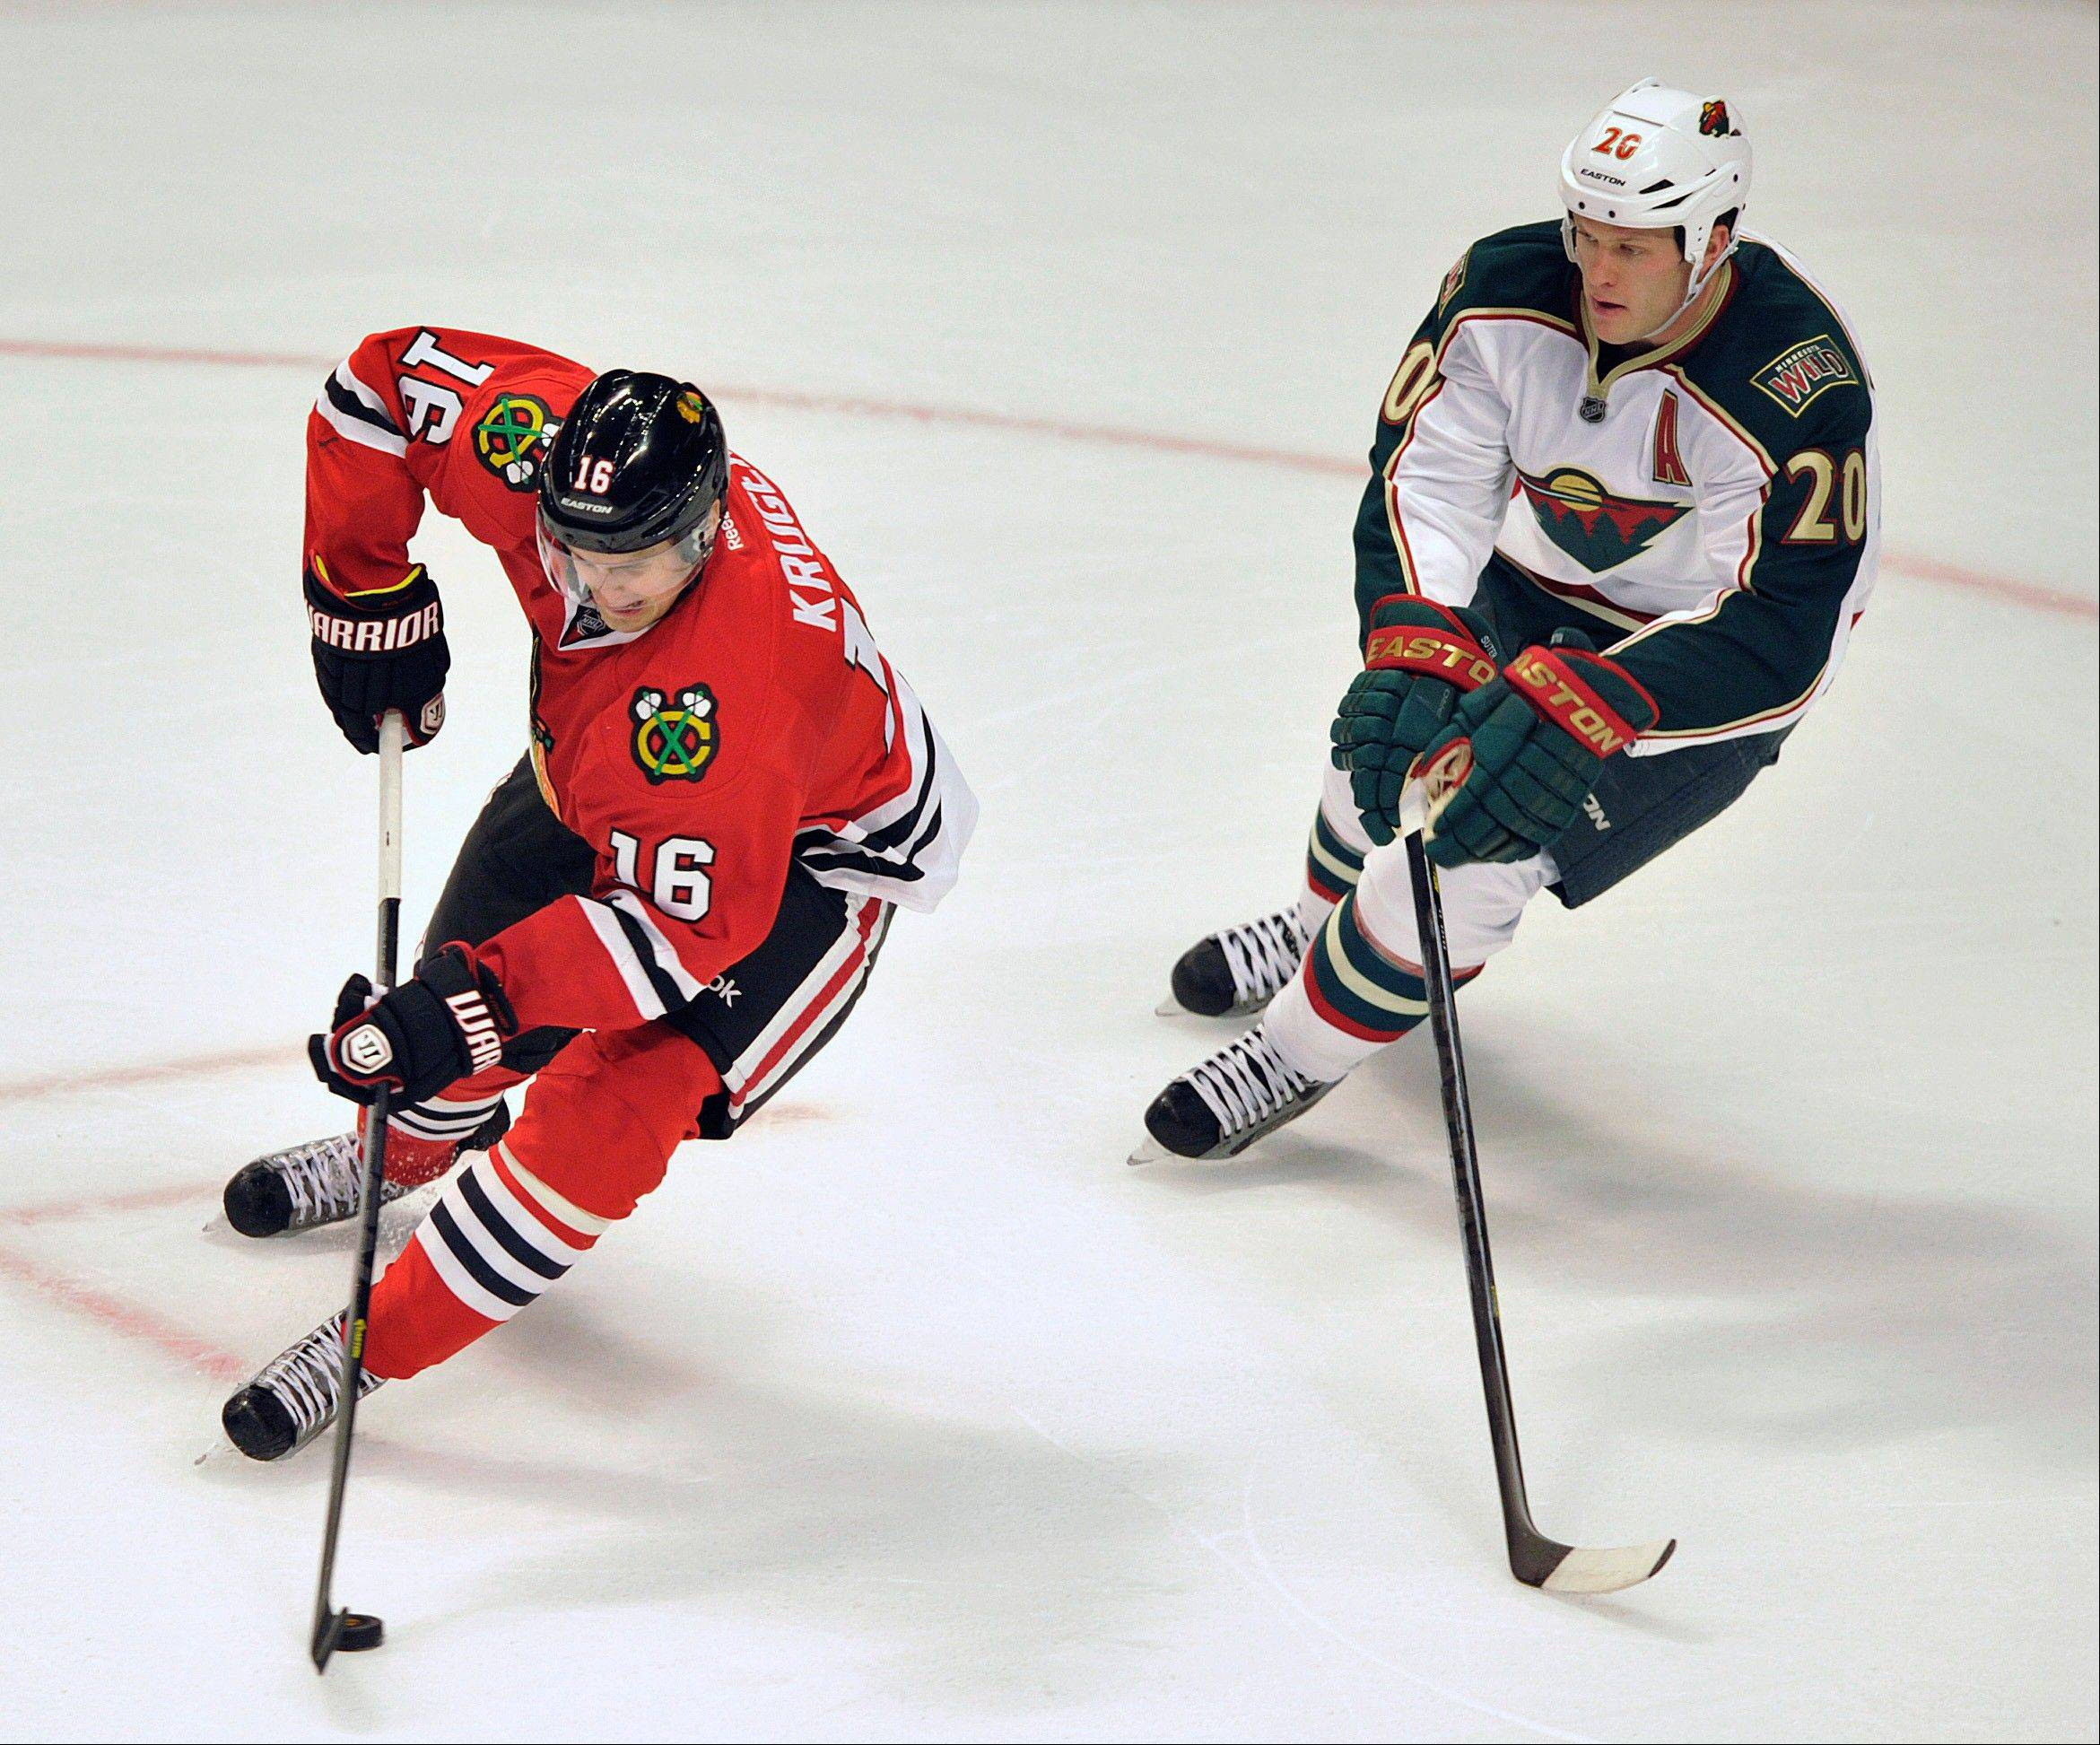 Chicago Blackhawks' Marcus Kruger (16) backhands a shot as Minnesota Wild's Ryan Suter defends during the second period of Game 1 of an NHL hockey Stanley Cup playoff series Tuesday, April 30, 2013, in Chicago.